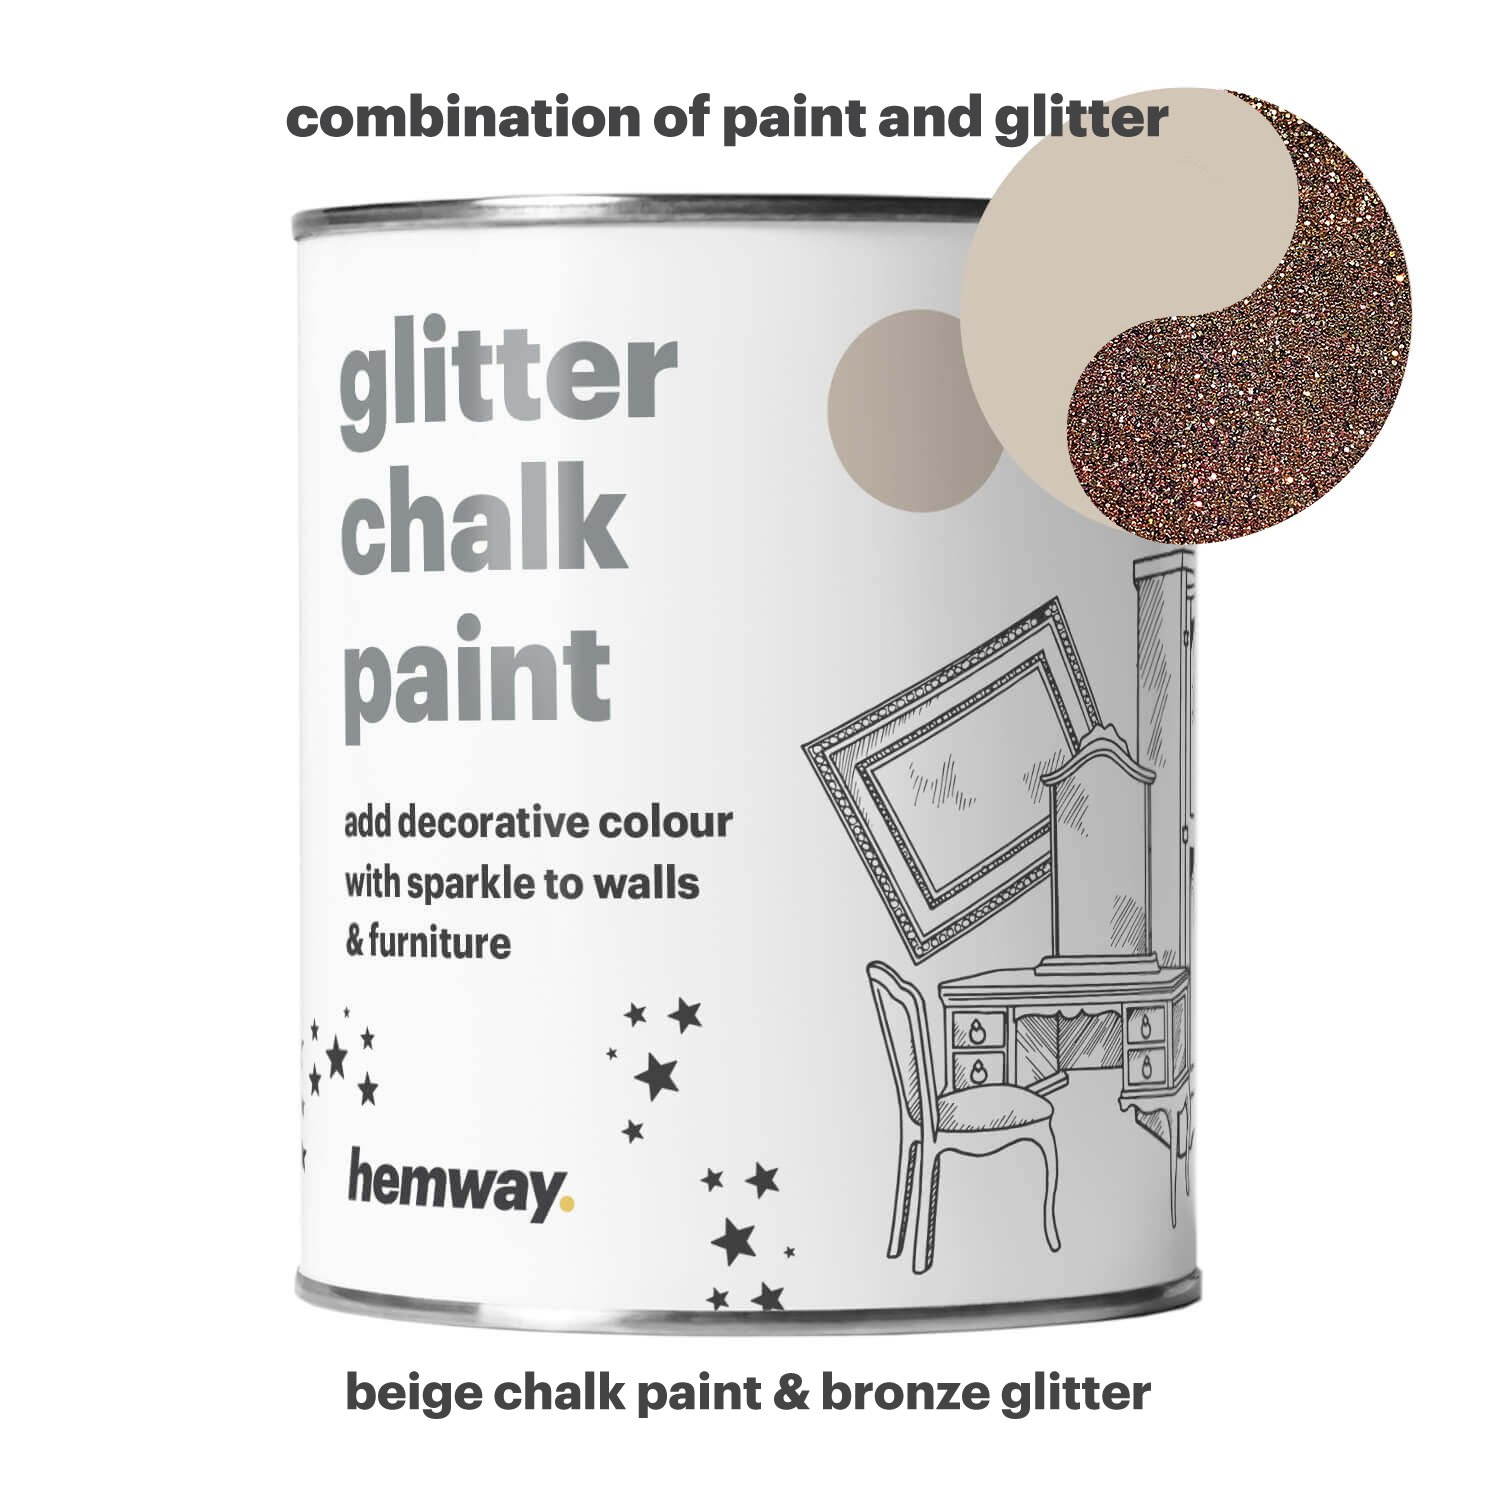 Hemway Beige Chalk Paint (with Bronze Glitter) Sparkle Matt finish Wall and Furniture Paint 1L/35oz Shabby Chic Vintage Chalky Crystal (25 Glittery Colours Available) by Hemway